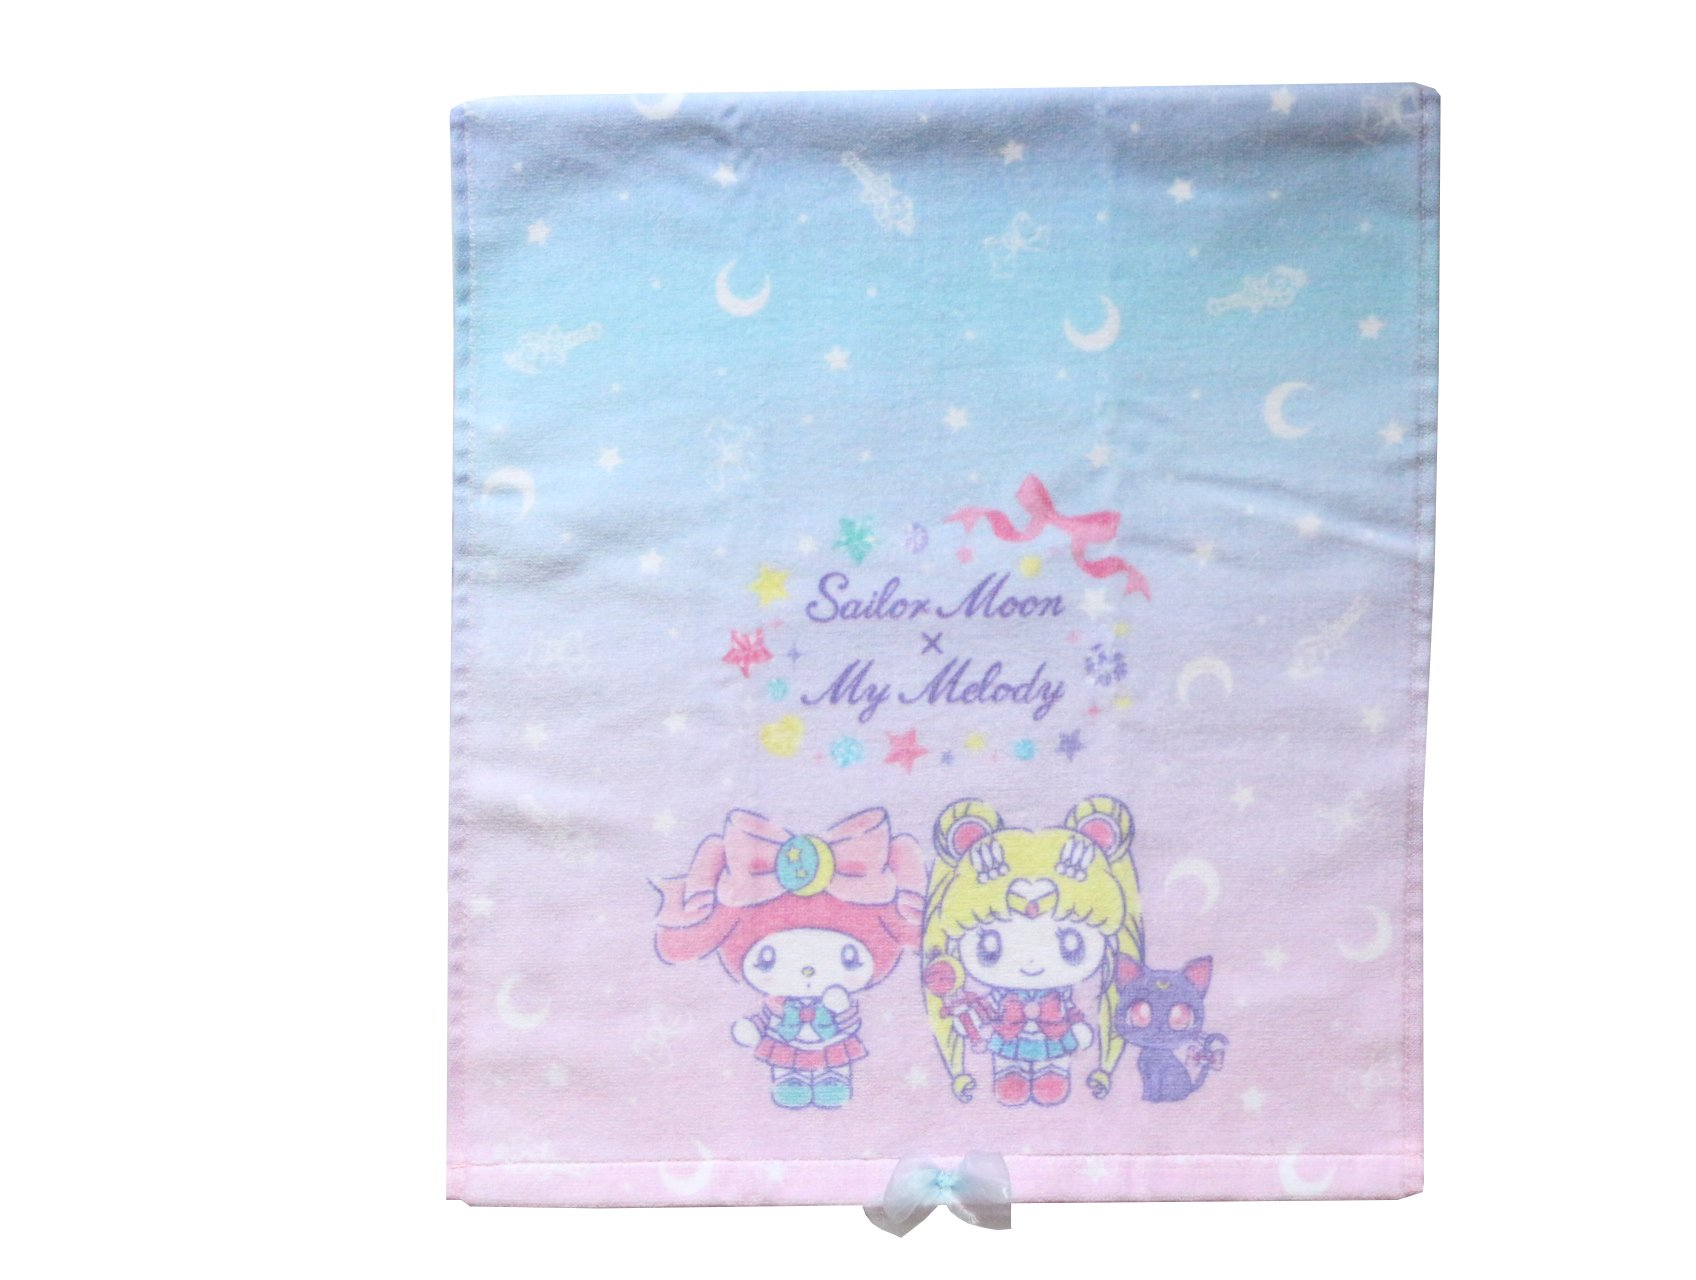 Sailor Moon x My Melody Sanrio Hand Towel Japan Limited Edition